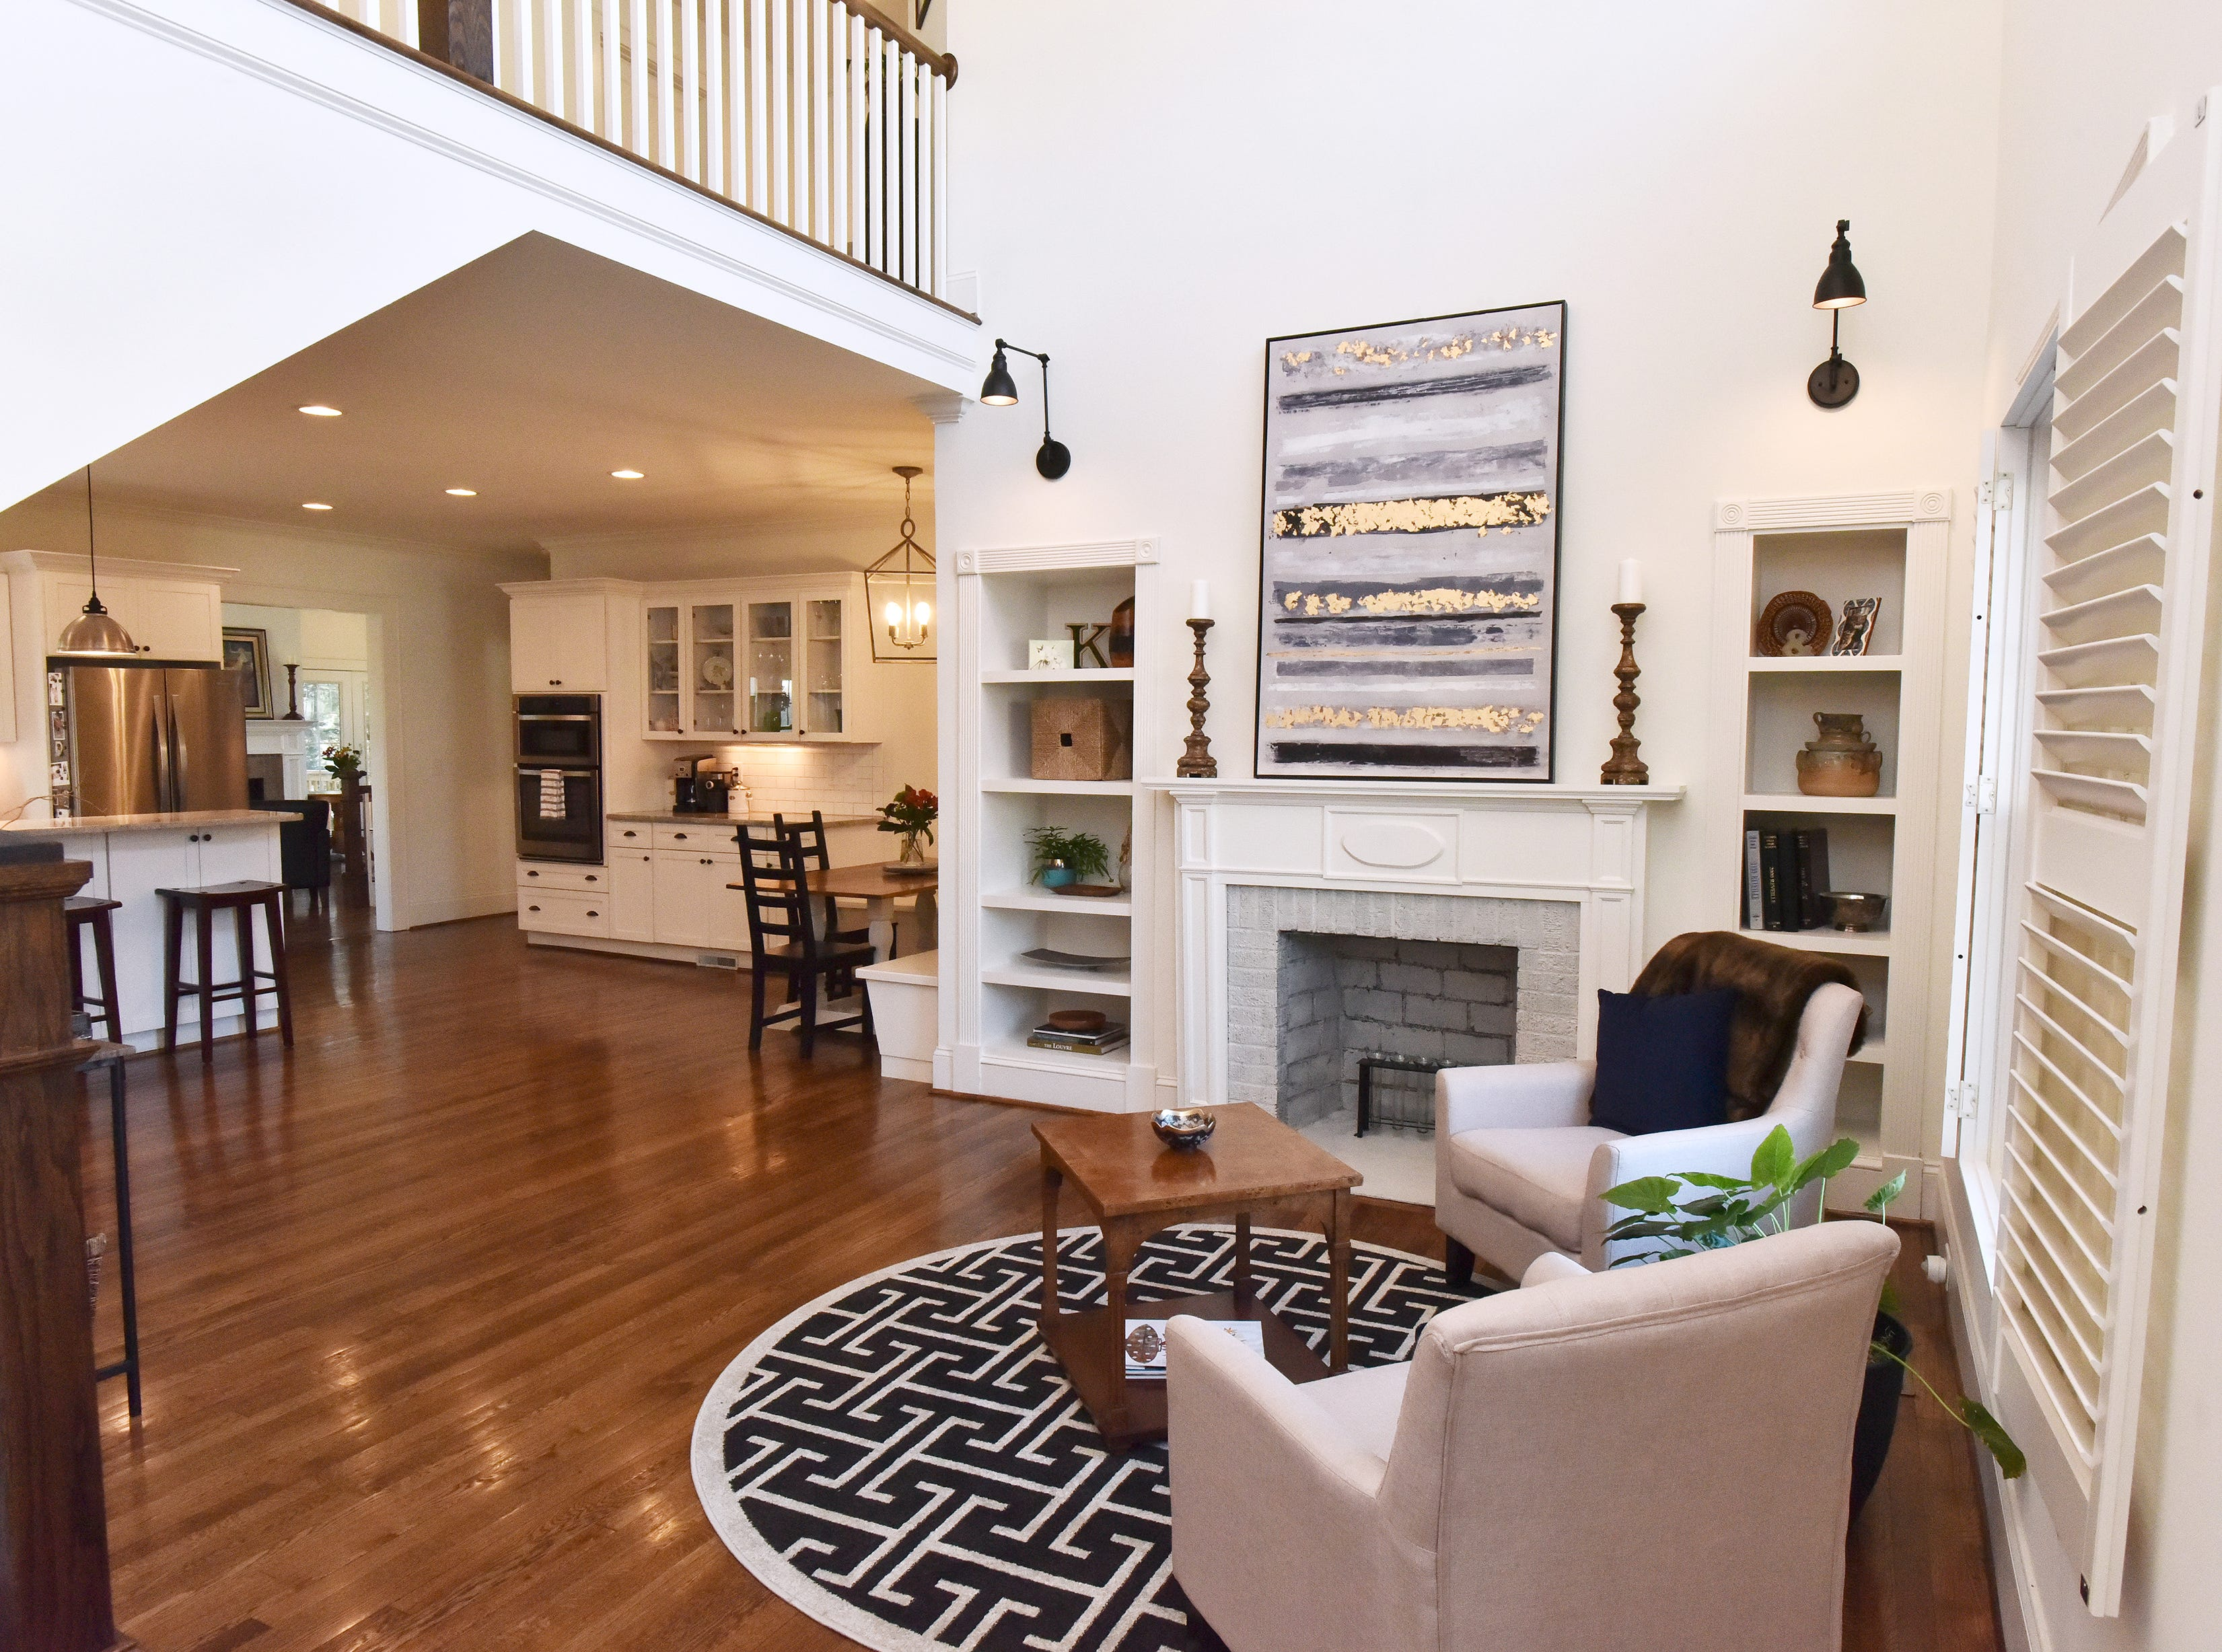 An open floor plan that features the living room, kitchen, and small dining area.